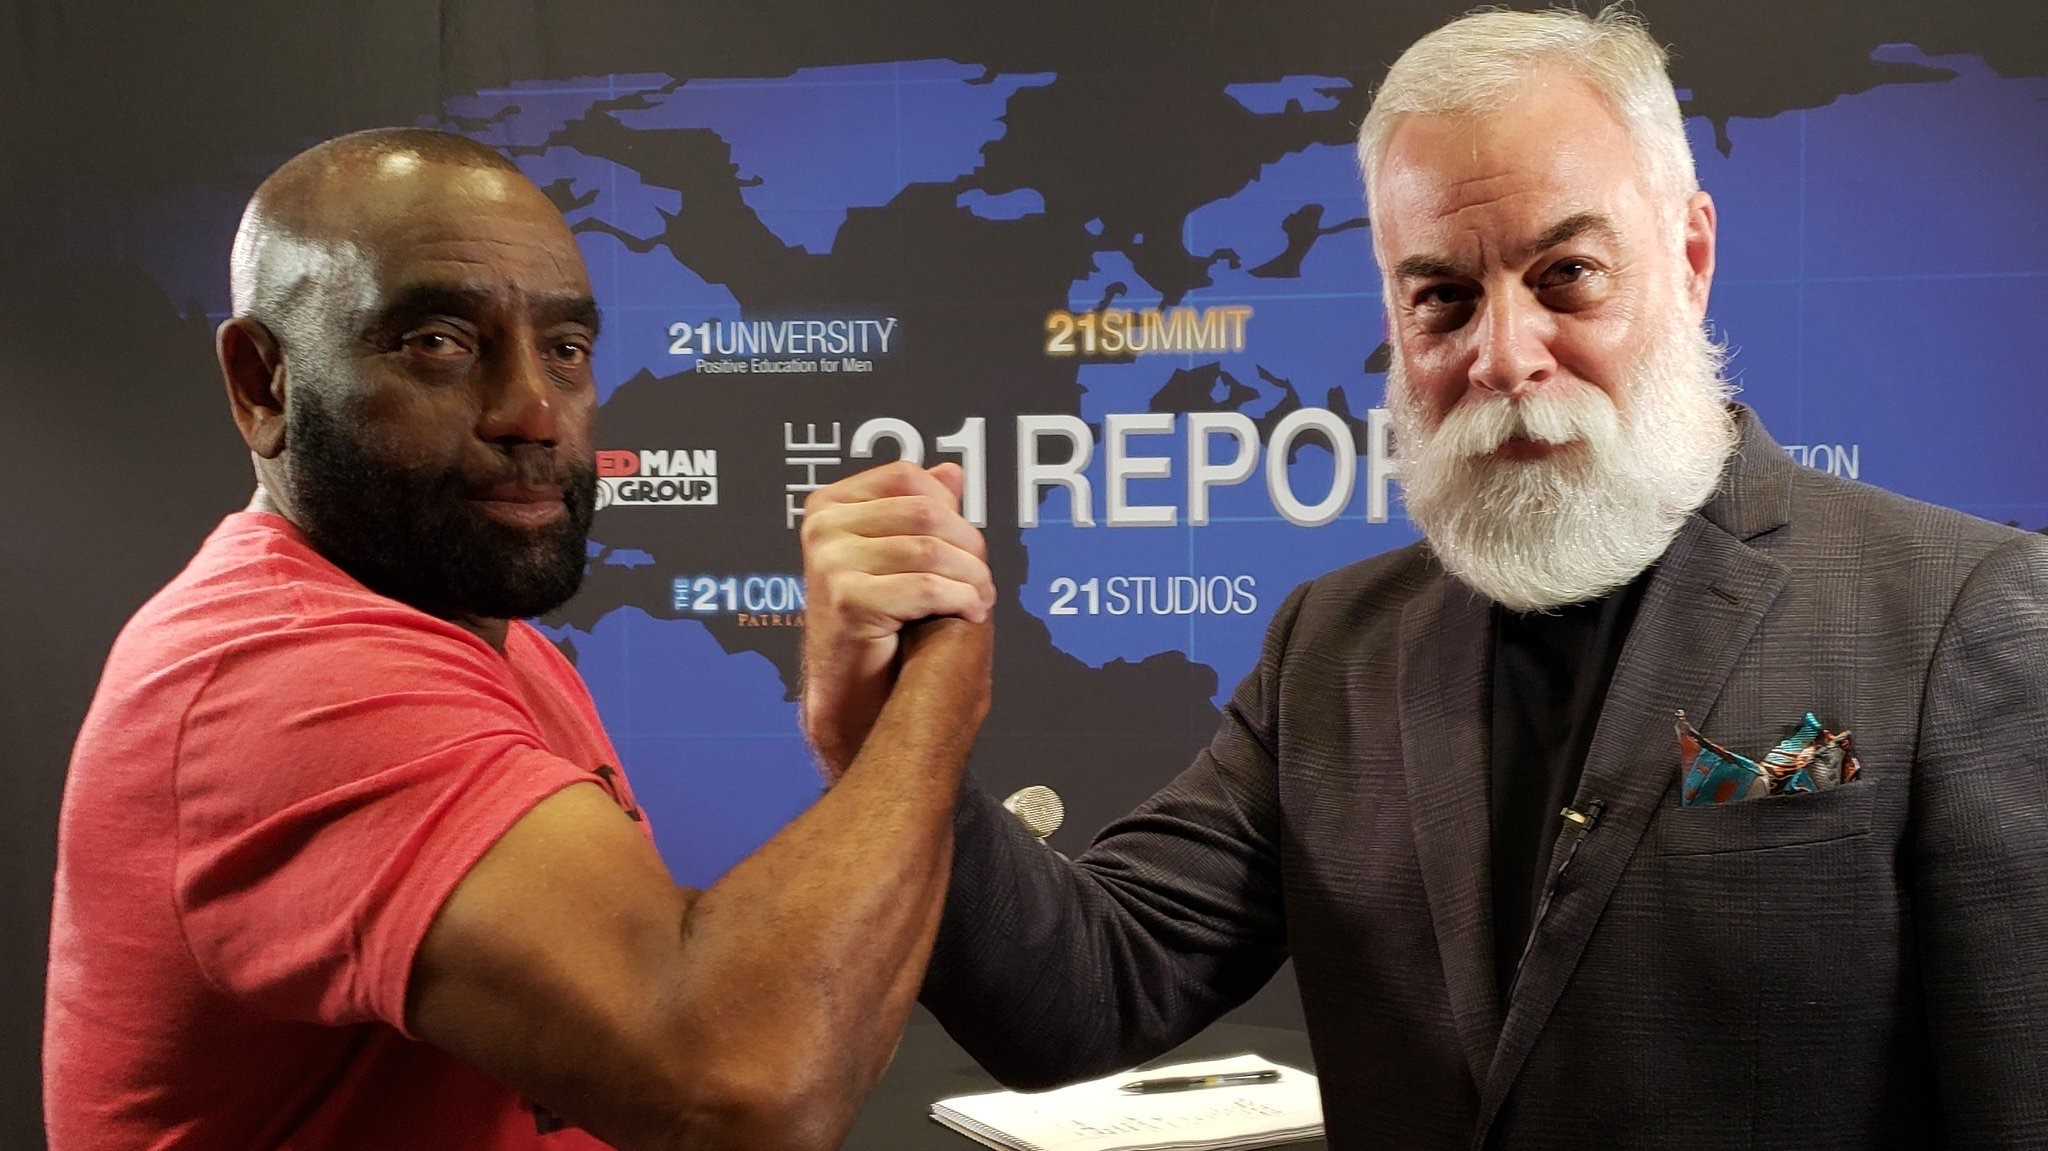 Jesse Lee Peterson on The 21 Report with George Bruno